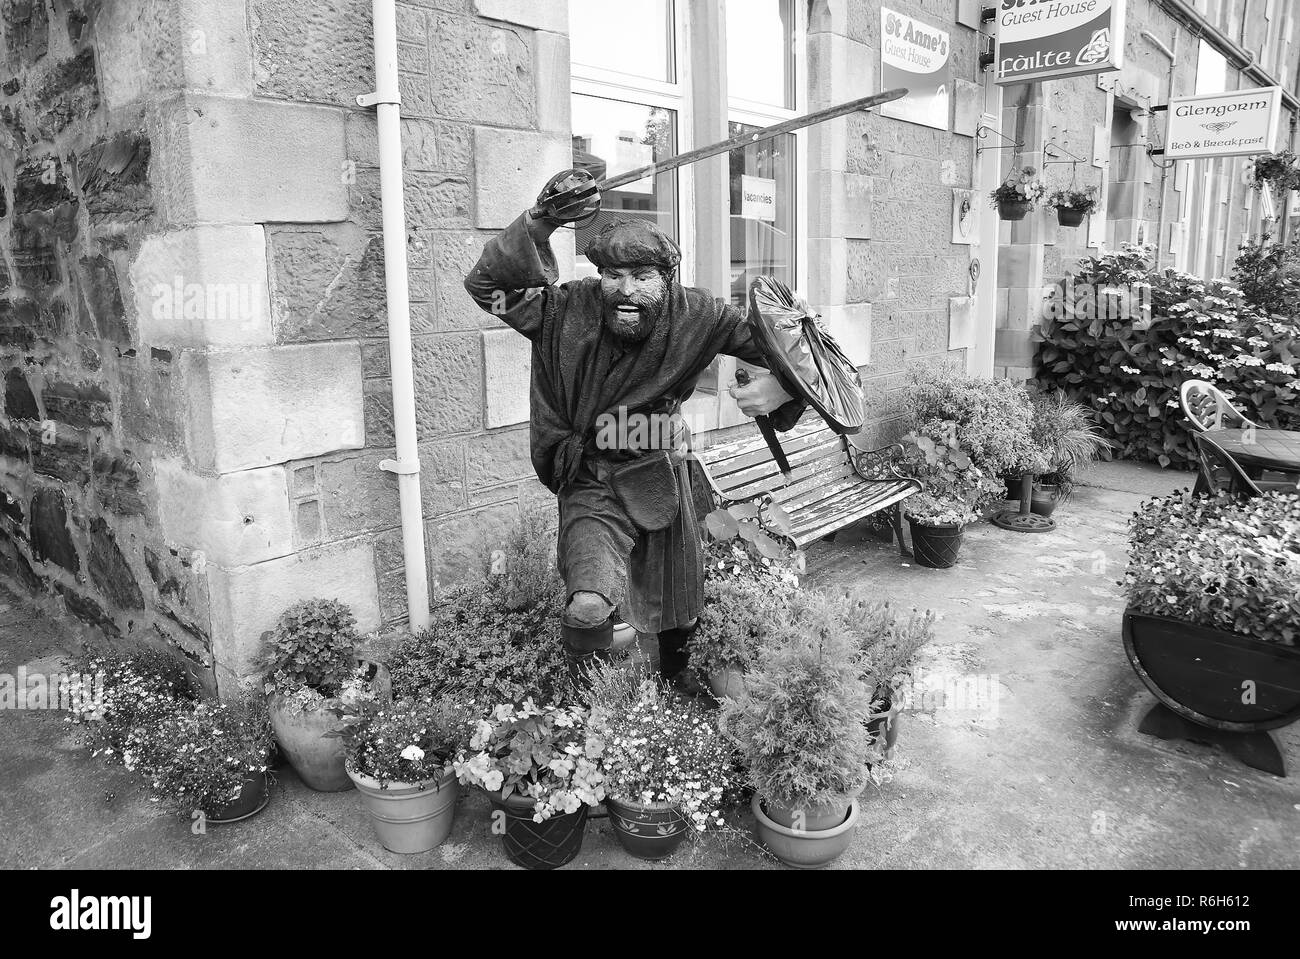 Oban, United Kingdom - February 20, 2010: warrior statue on building corner with pot plants. Town house with bench and flowers in yard. Victorian style architecture and design. Hotel accommodation. - Stock Image